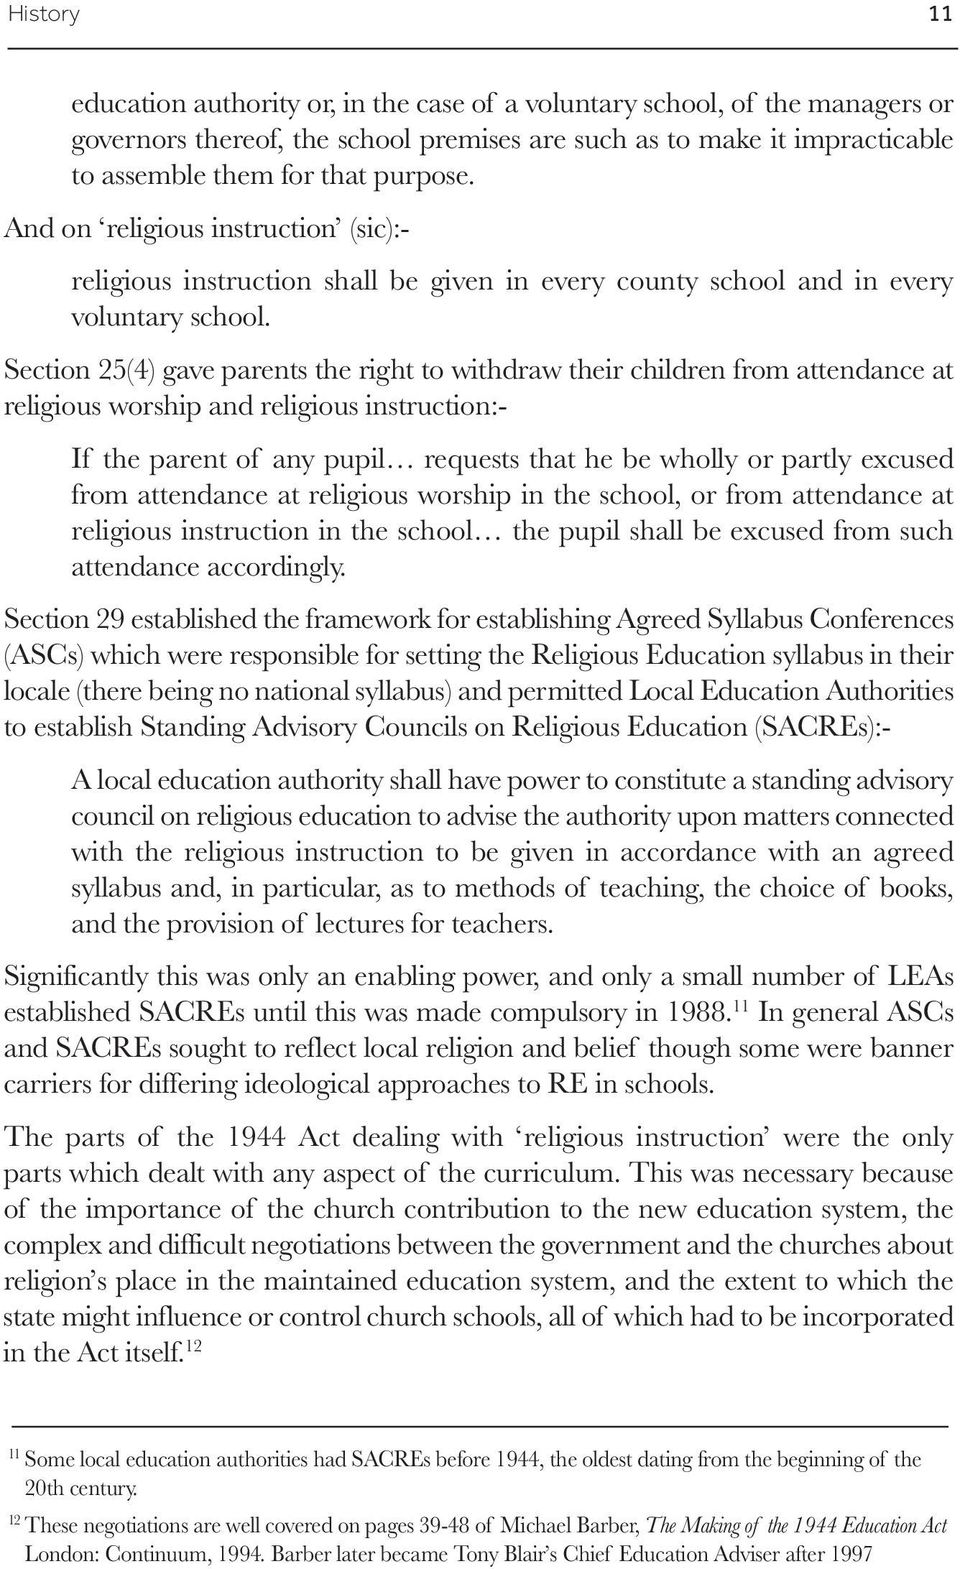 Section 25(4) gave parents the right to withdraw their children from attendance at religious worship and religious instruction:- If the parent of any pupil requests that he be wholly or partly